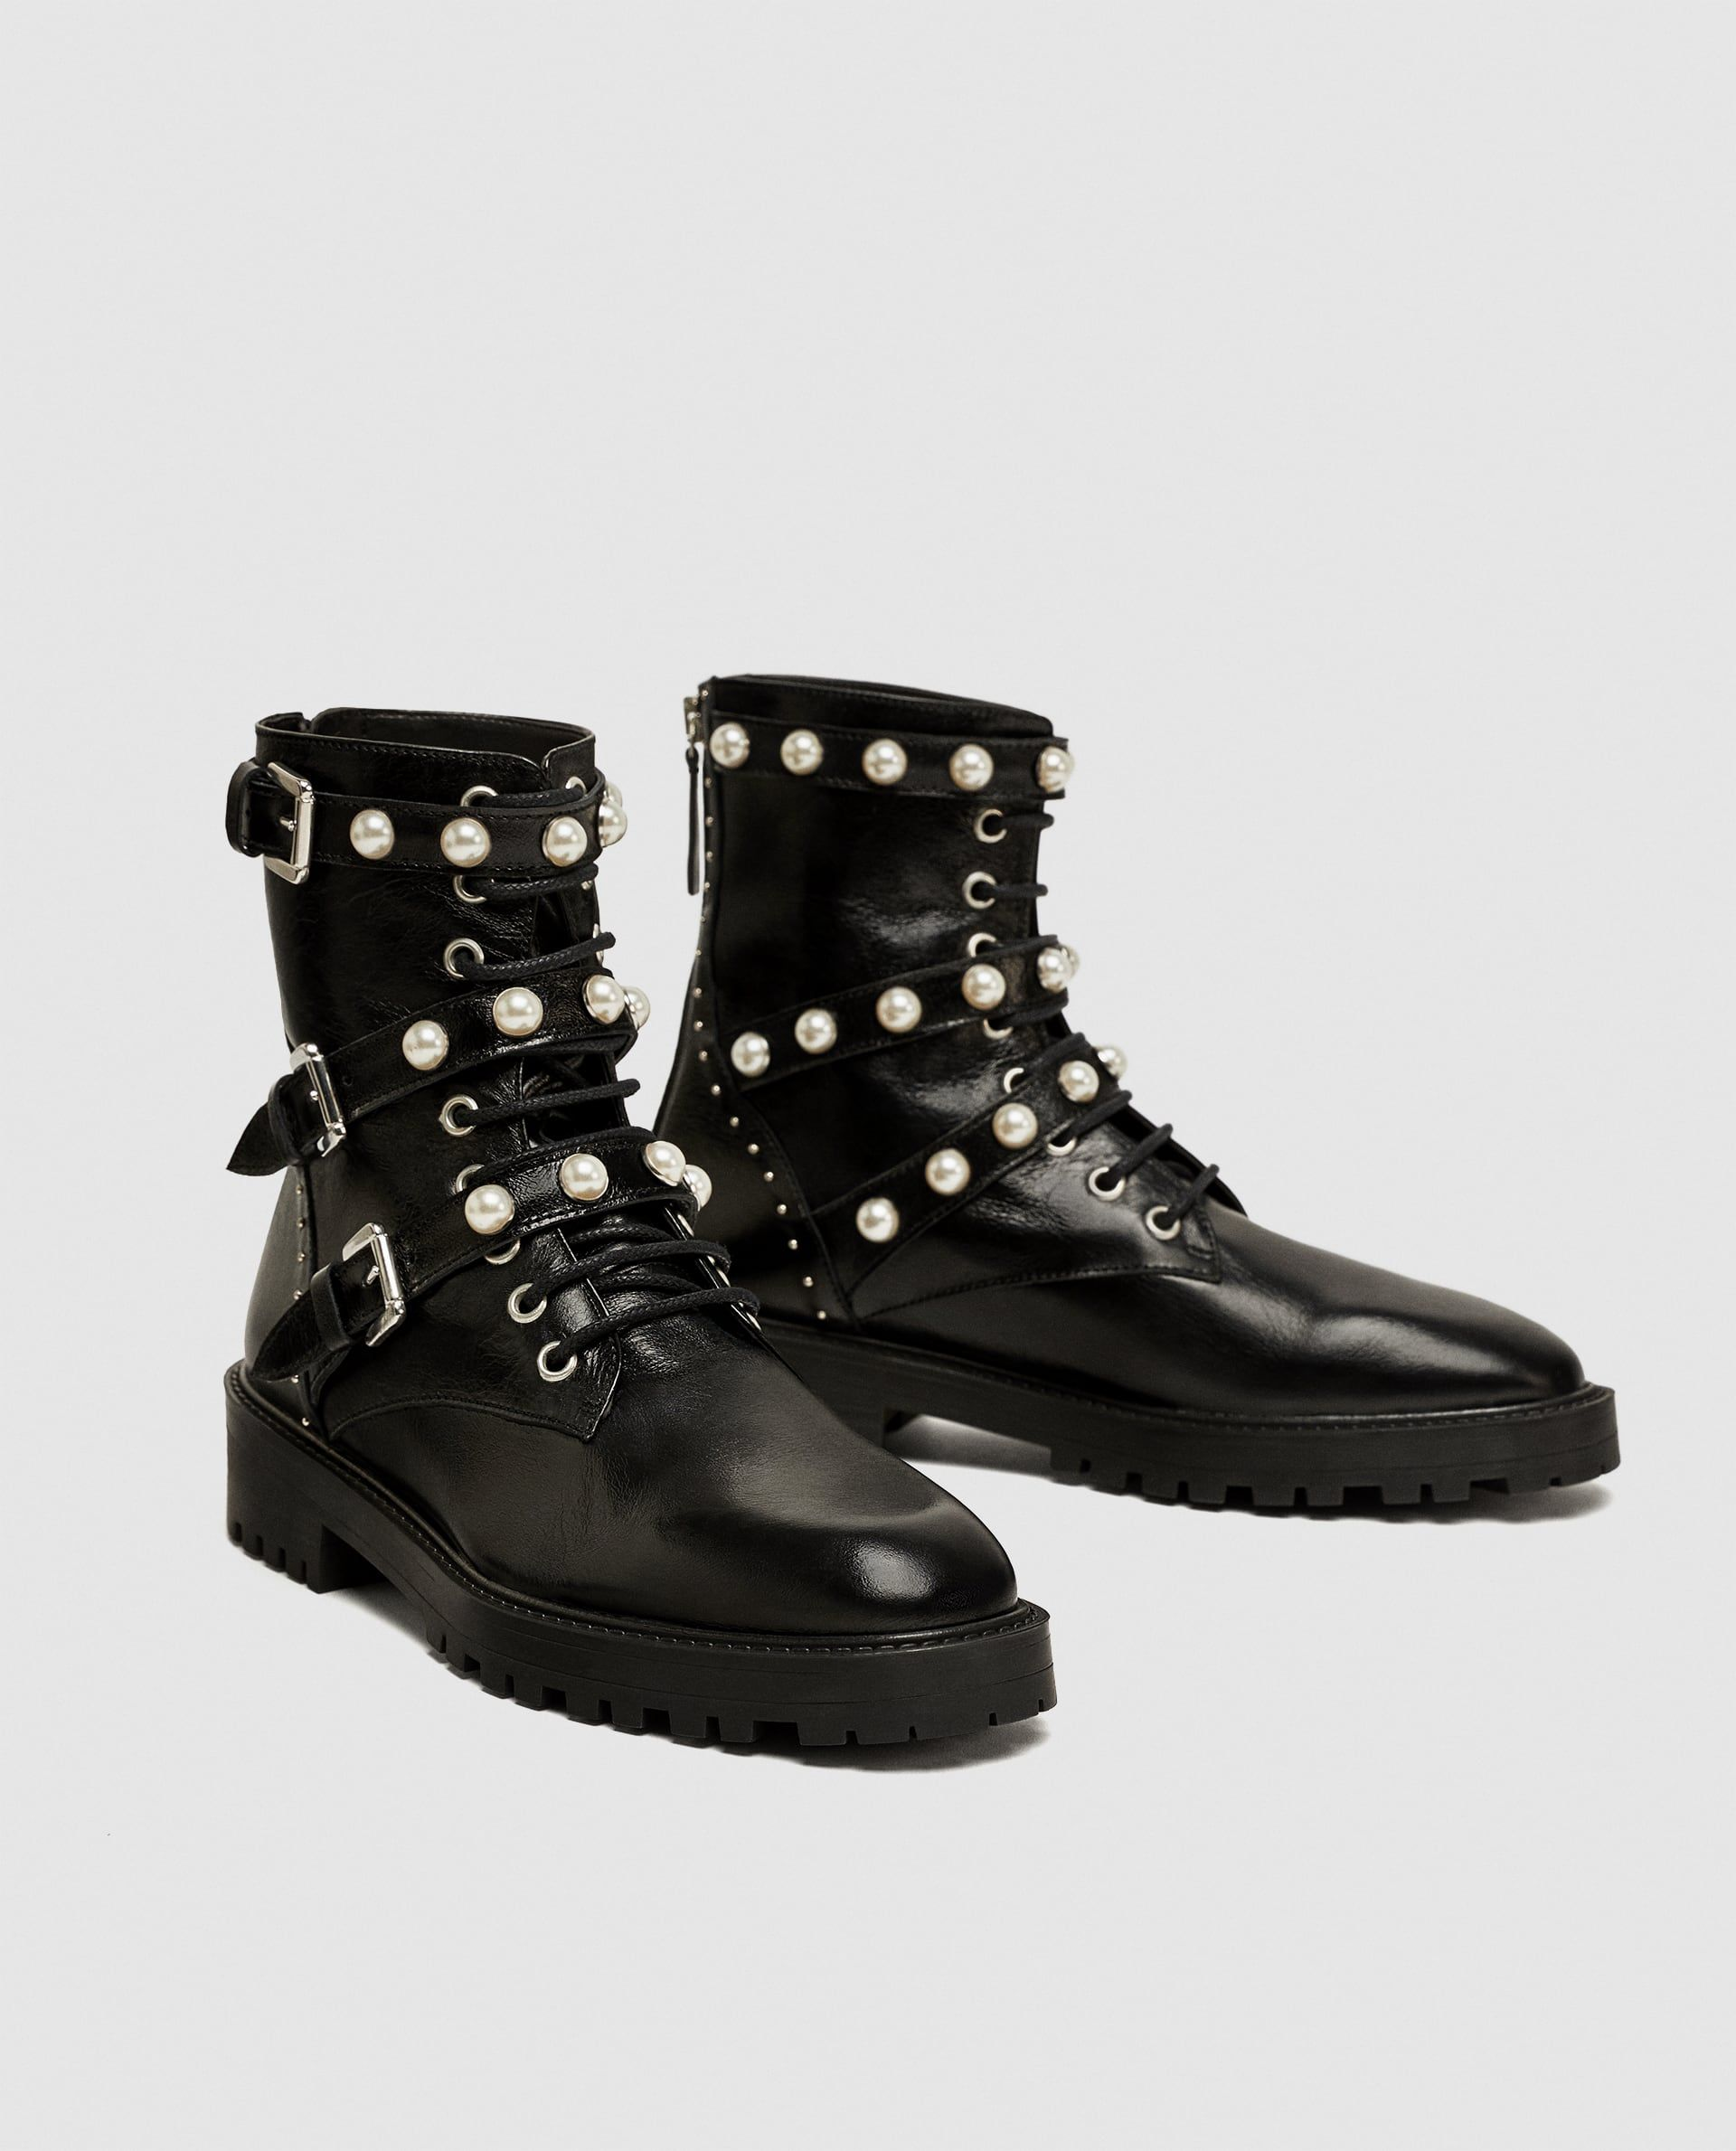 95773b0eb09 Image 4 of LEATHER ANKLE BOOTS WITH FAUX PEARLS from Zara Leather Ankle  Boots, Zara